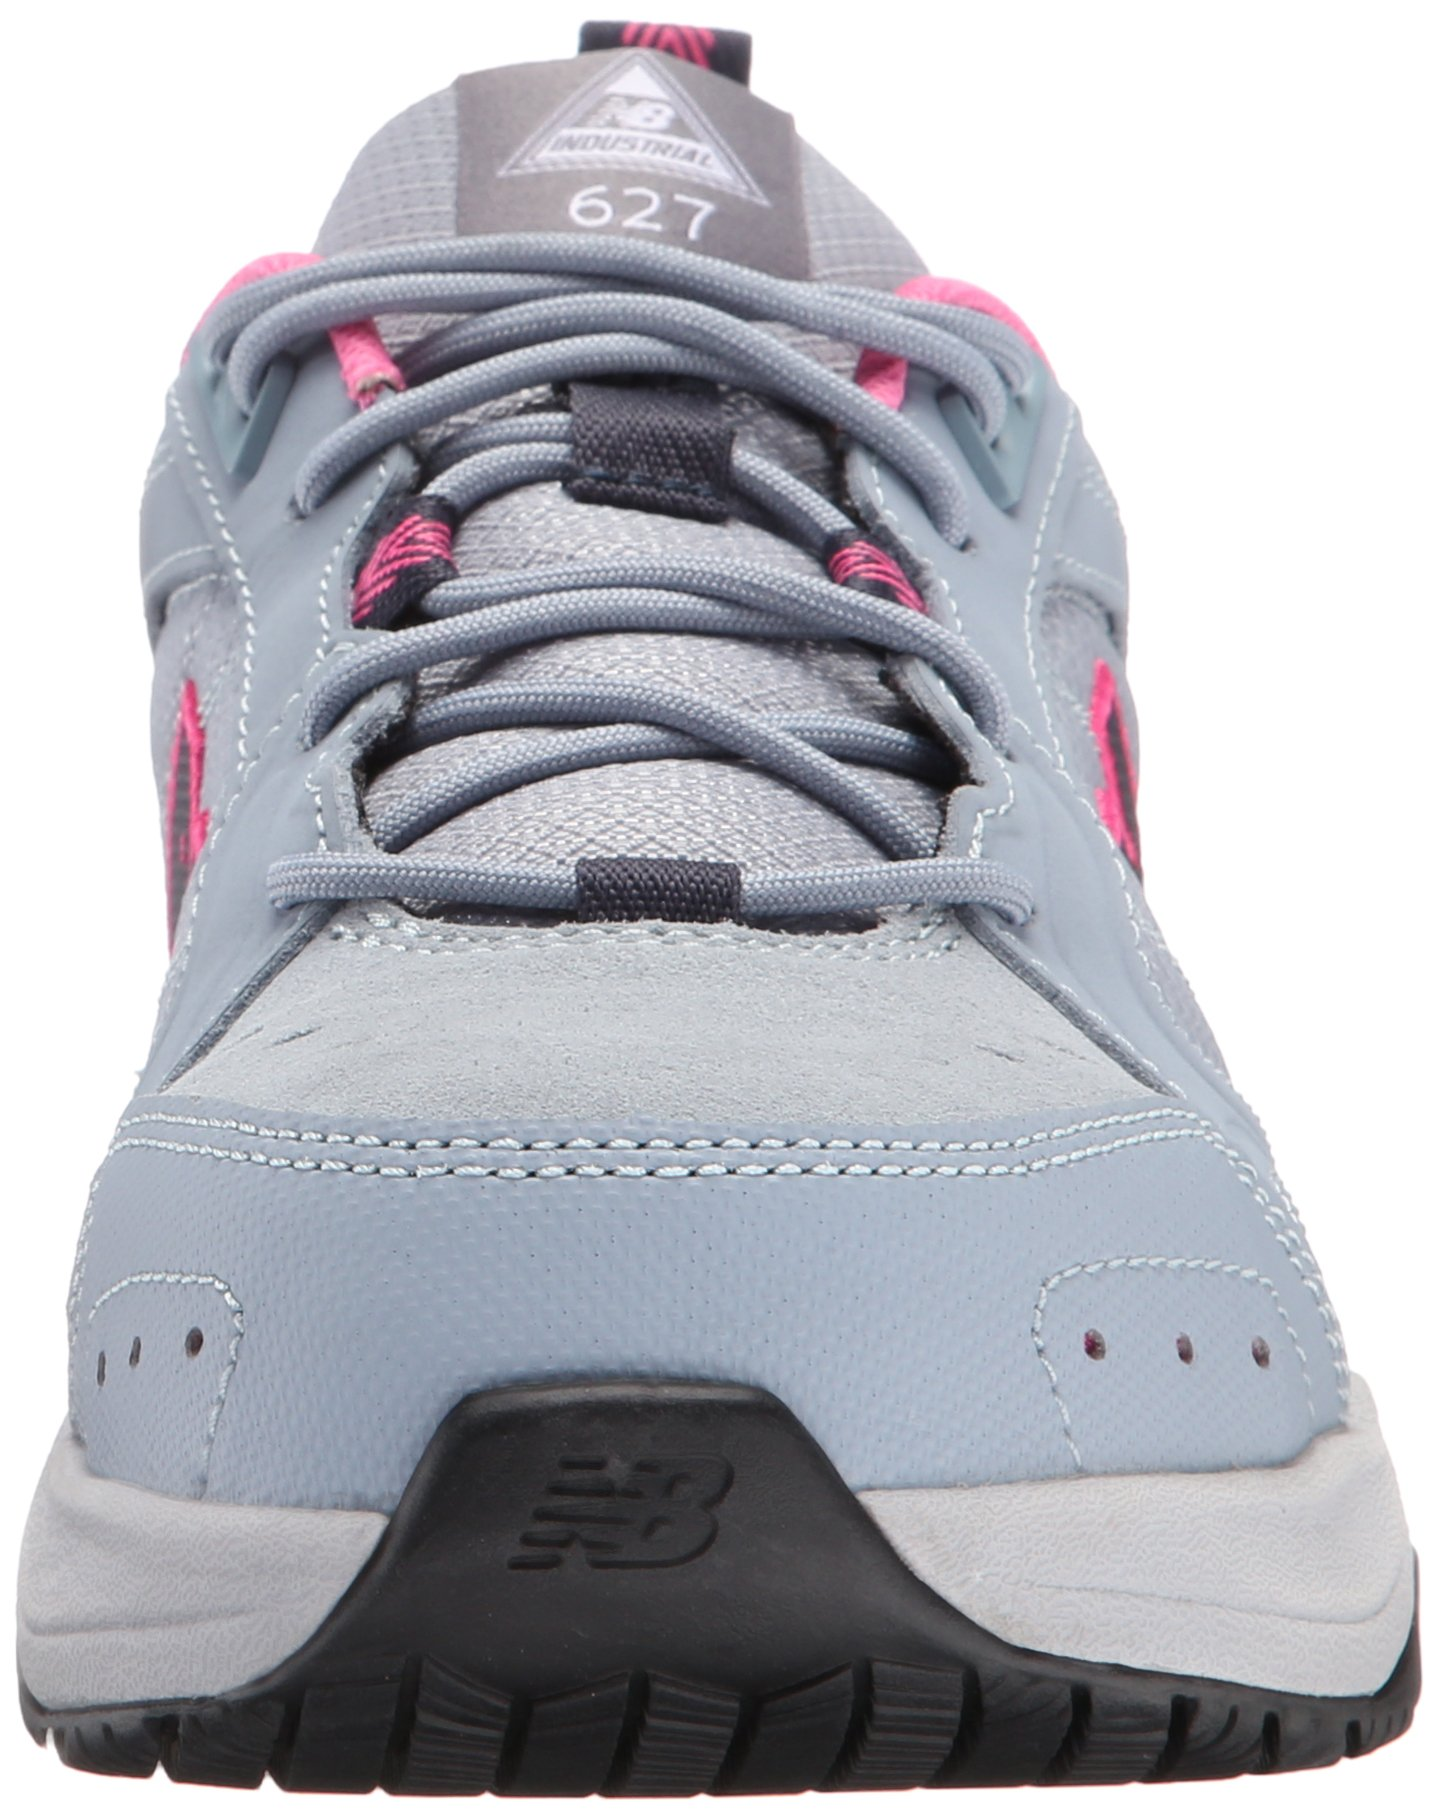 New Balance Women's WID627V1 Steel Toe Training Work Shoe,Light Grey/Pink,8 B US by New Balance (Image #4)